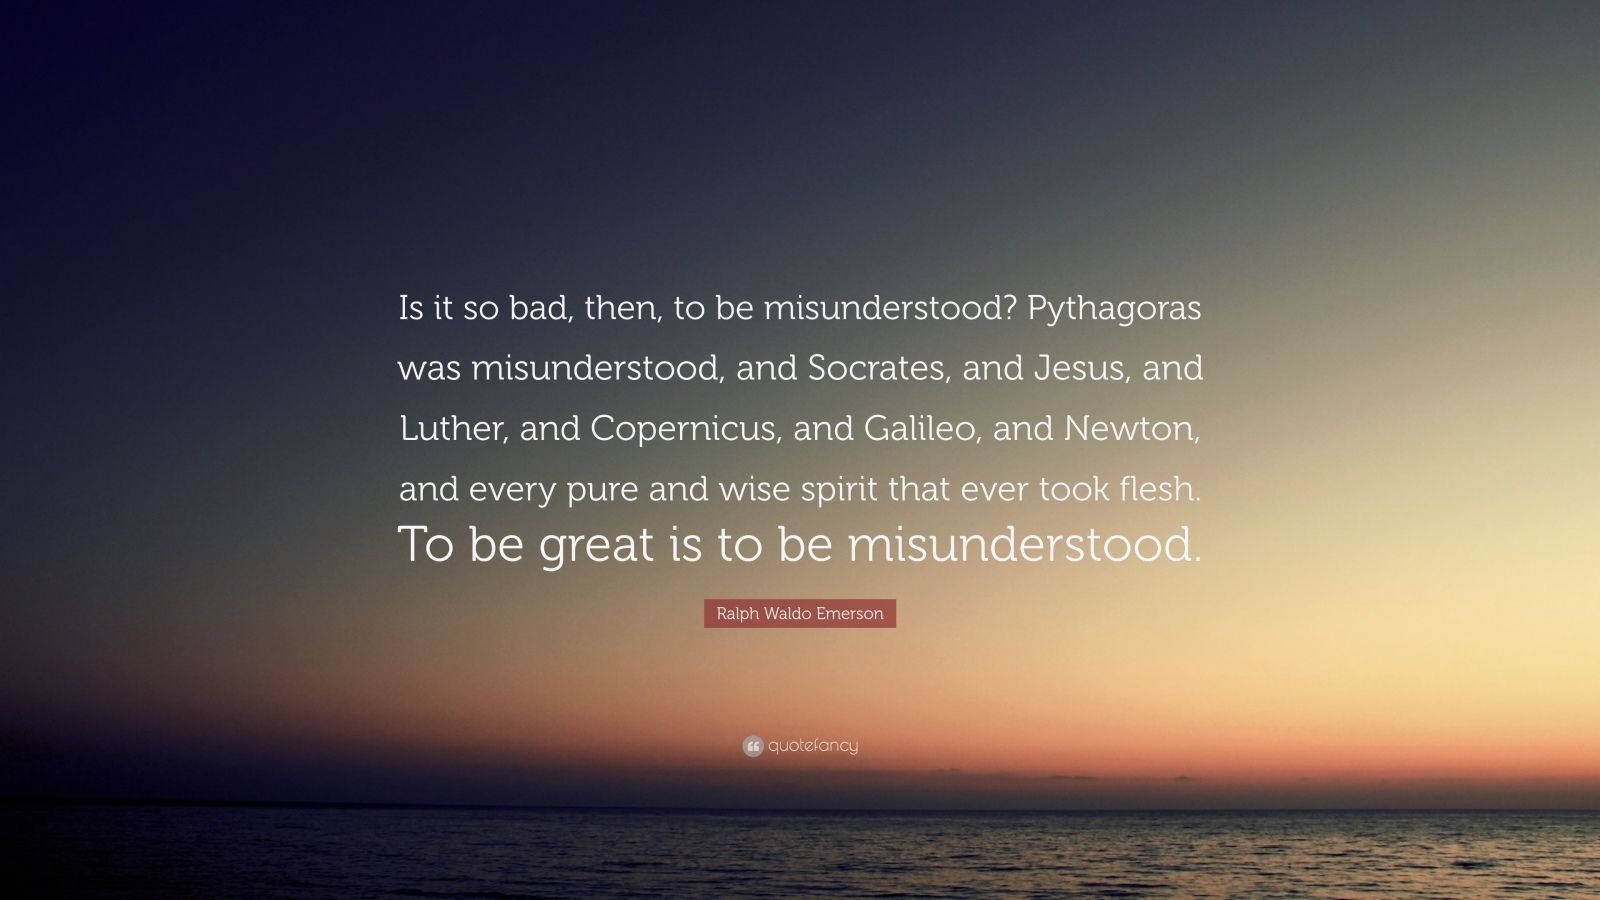 "Ralph Waldo Emerson Quote: ""Is it so bad, then, to be misunderstood? Pythagoras was misunderstood, and Socrates, and Jesus, and Luther, and Copernicus, and Galileo, and Newton, and every pure and wise spirit that ever took flesh. To be great is to be misunderstood."""